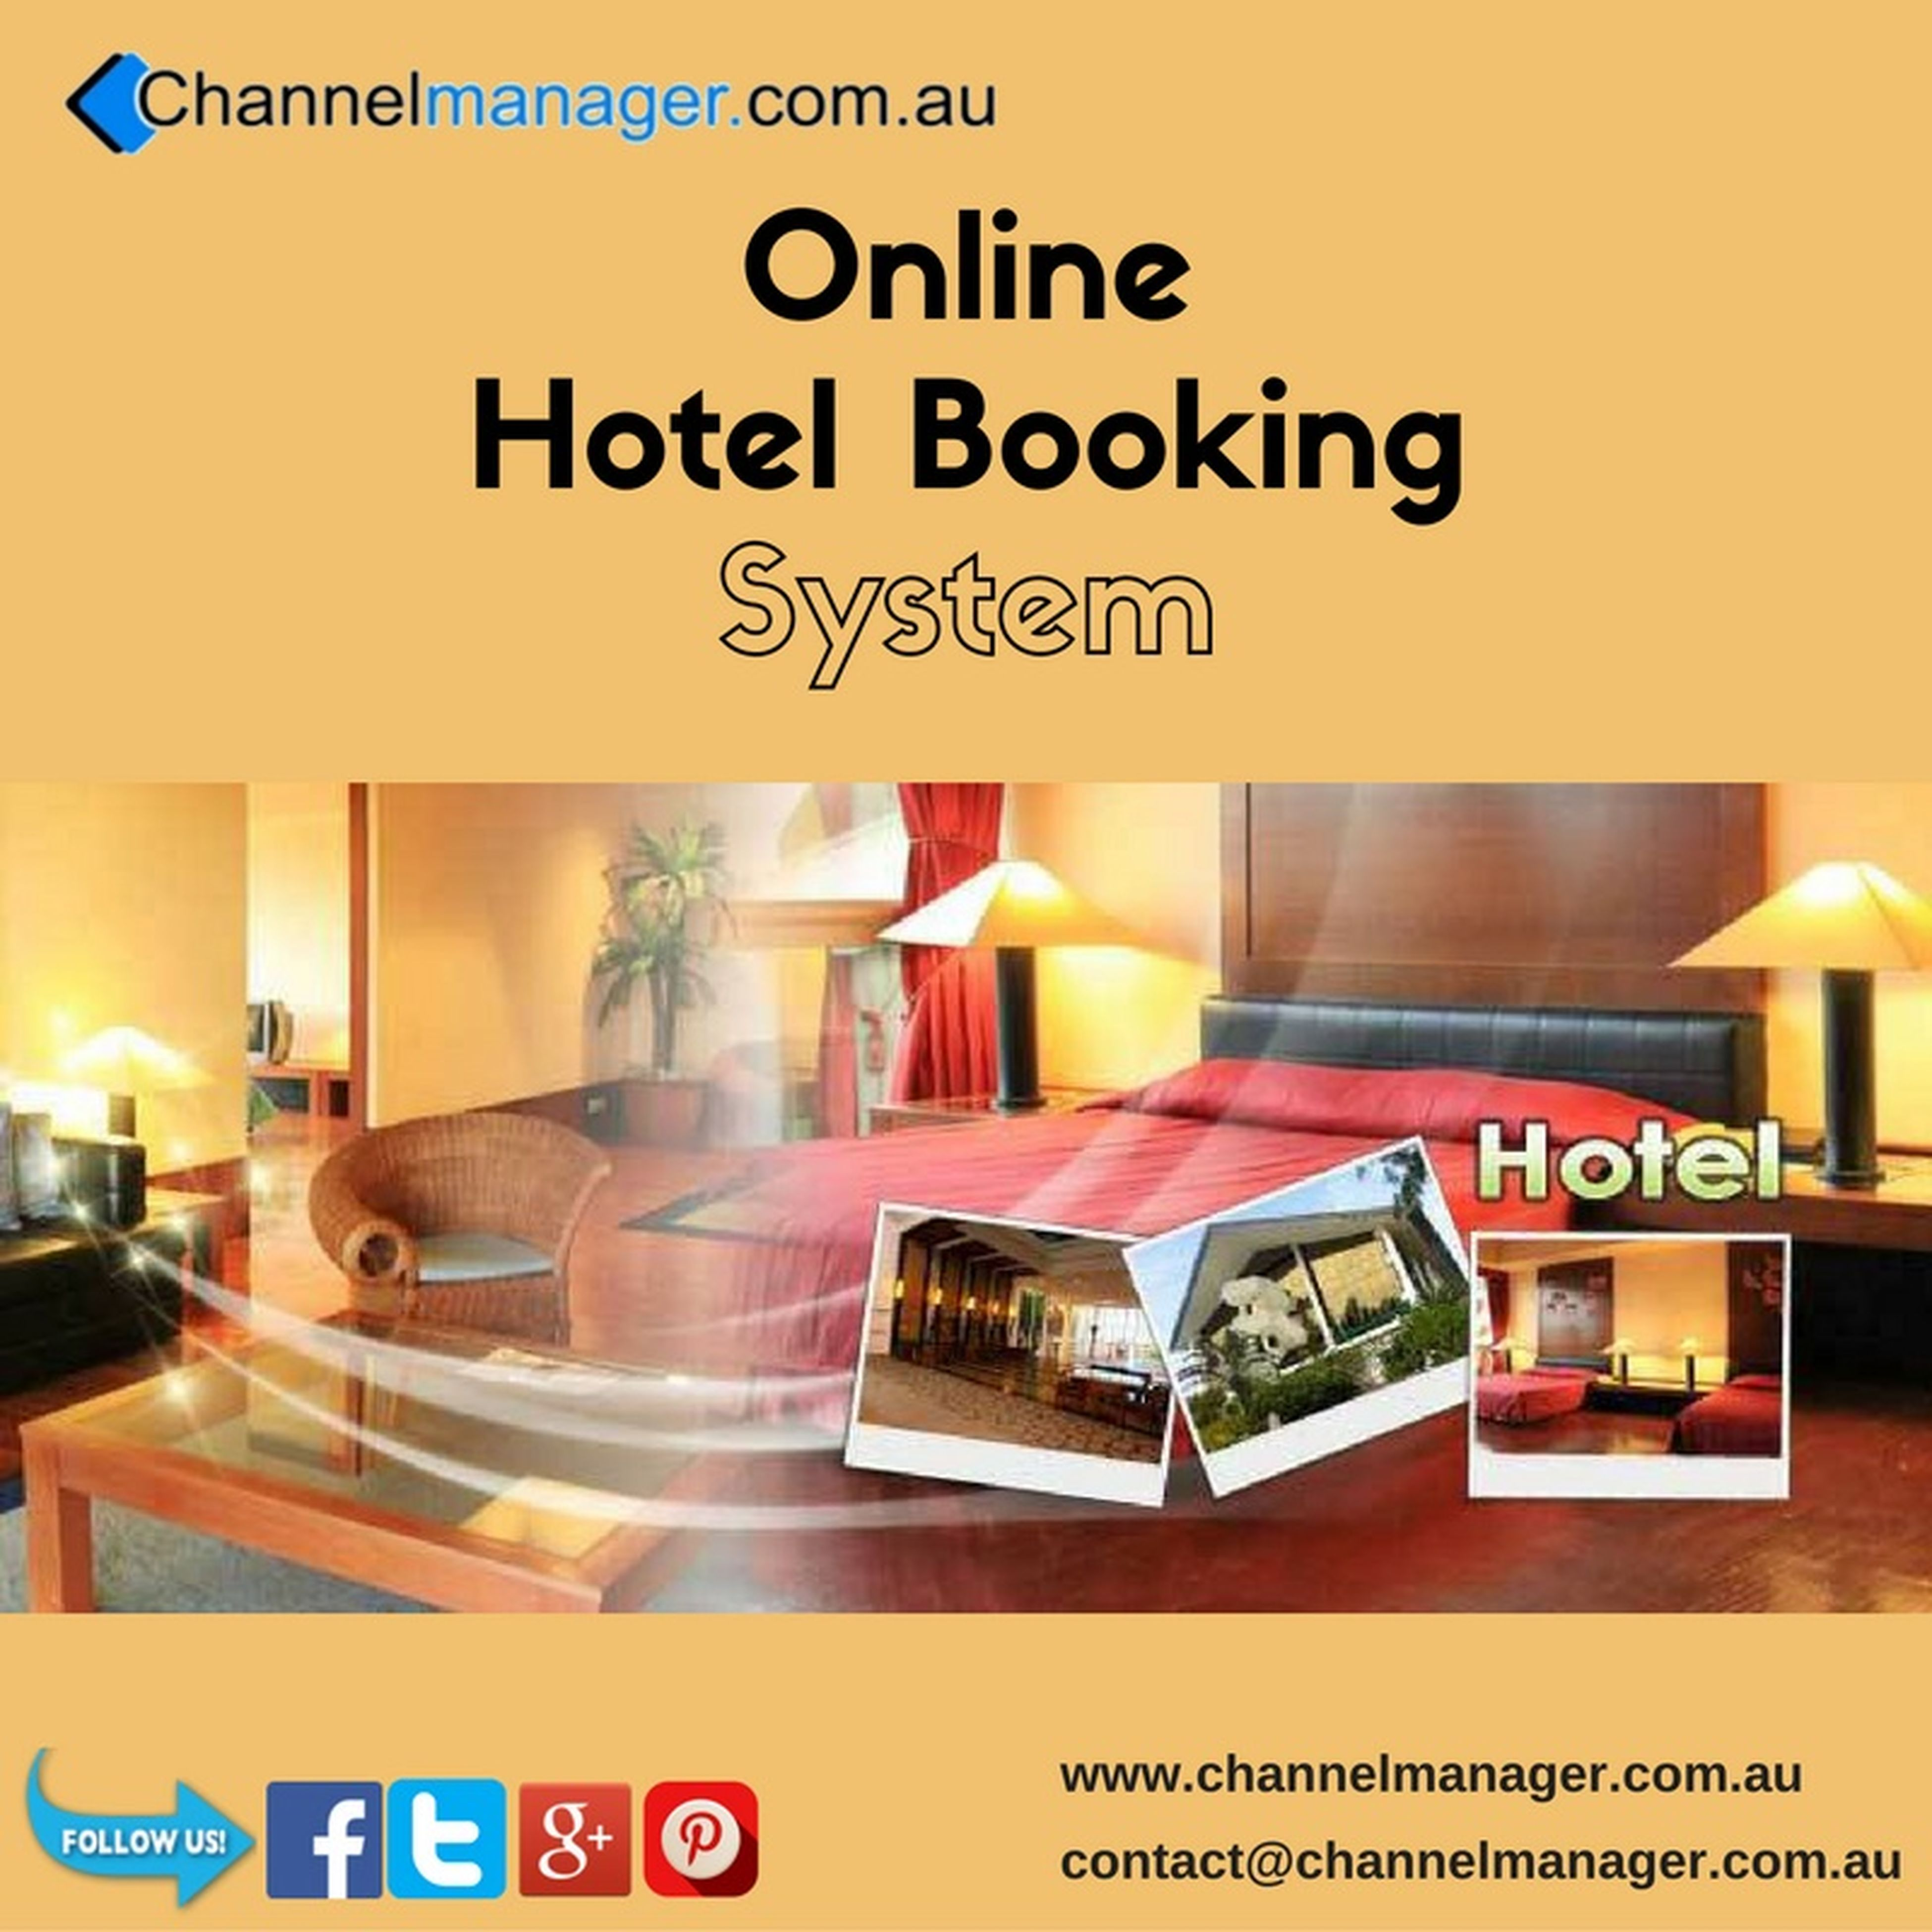 One of the best bed & breakfast softwares for your hotel operation management is ChannelManager. Being a web-based system it can be accessed anywhere from any device from a smart phone, tablet to desktop. http://www.channelmanager.com.au/ Bed And Breakfast Software Bookingmanager Hotels And Resorts Online Booking System Travel First Eyeem Photo